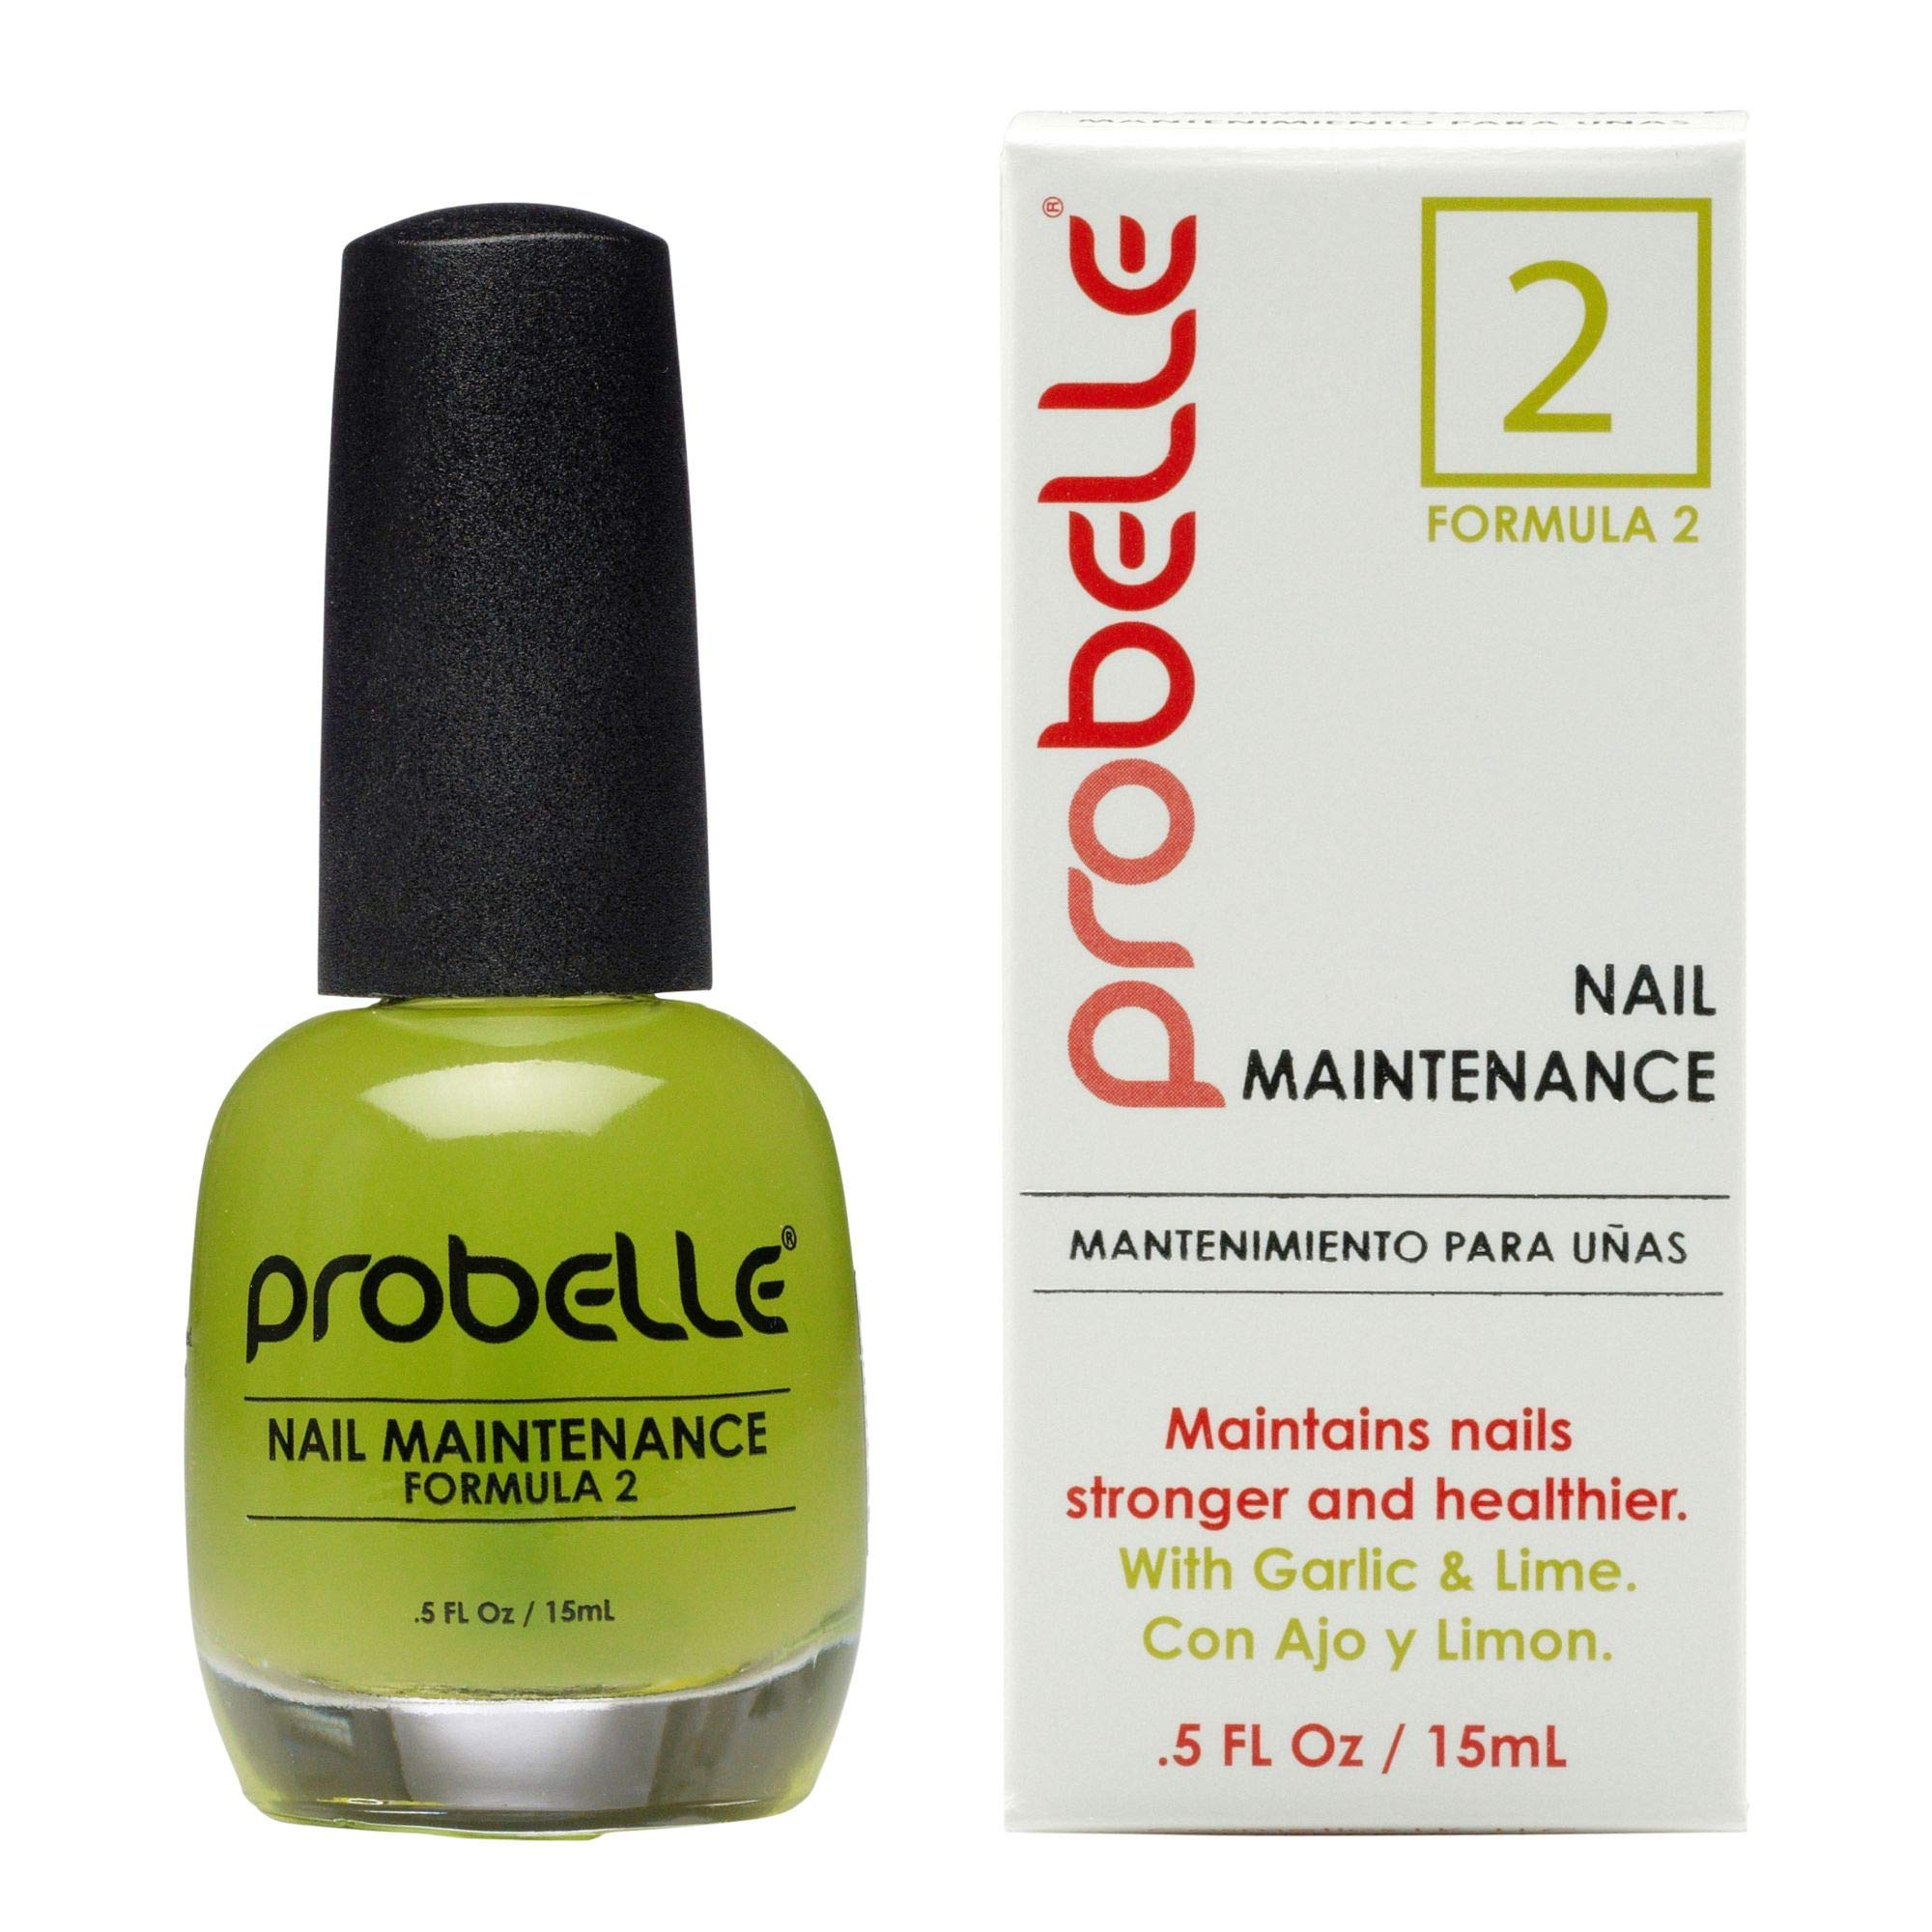 Probelle Formula 2 Nail Maintenance with Garlic and Lime.5 fl oz/ 15 mL by Probelle